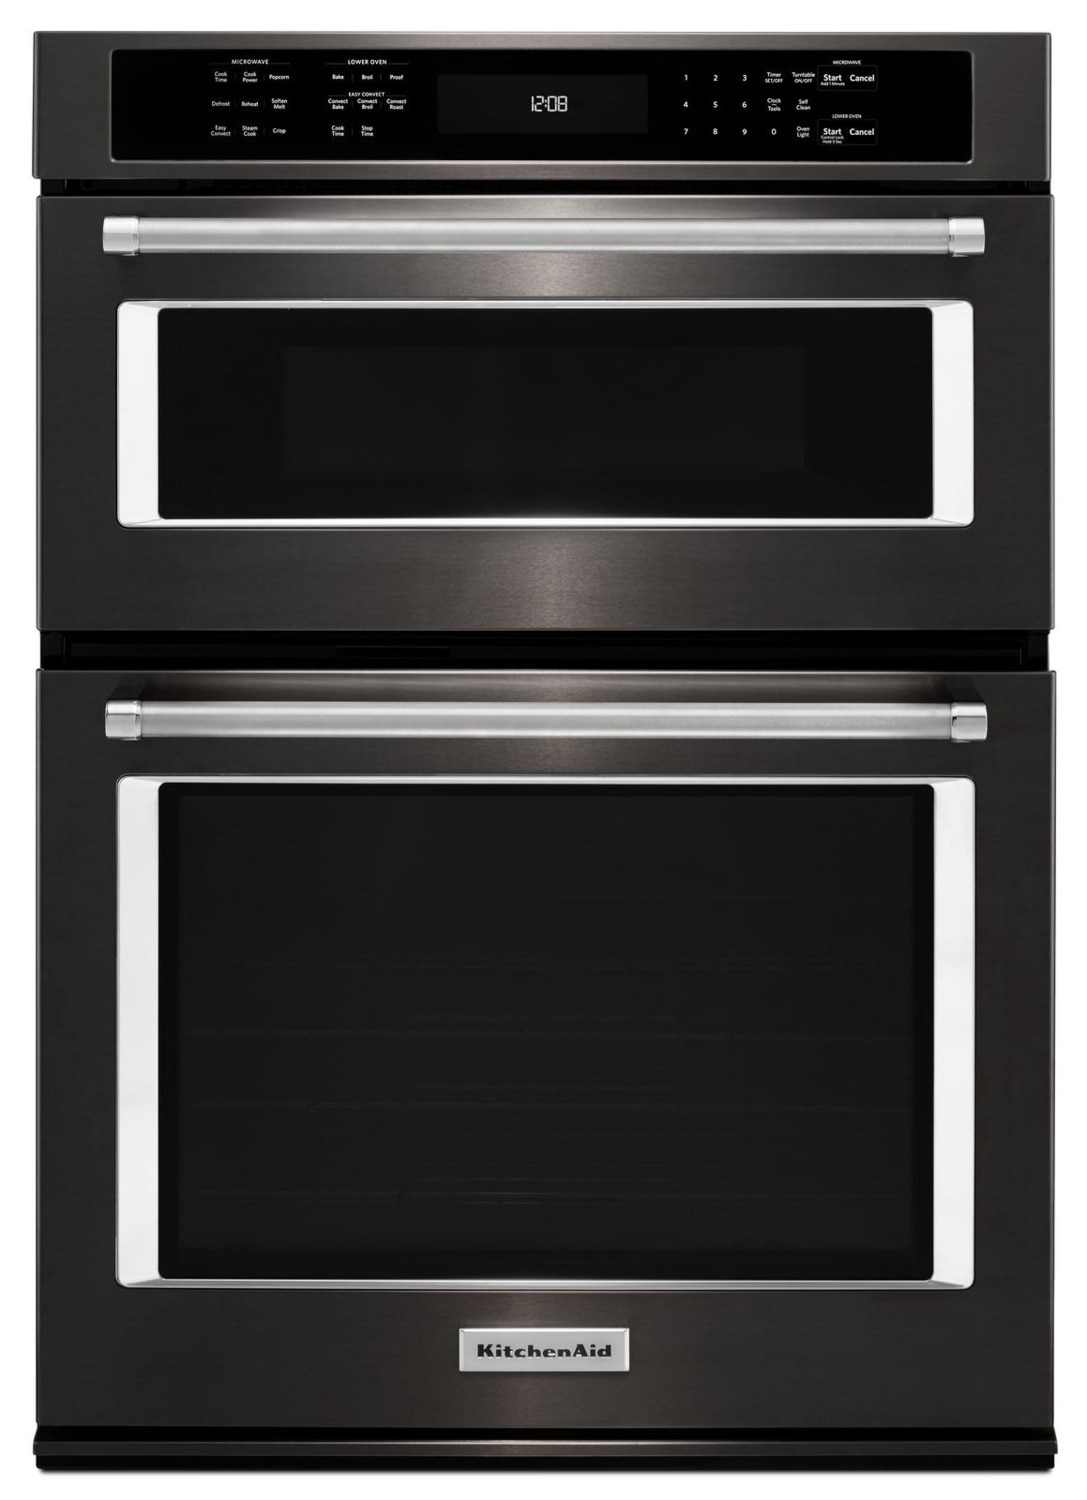 KitchenAid Black Stainless Steel Wall Oven (4.3 Cu.Ft.) w/ Microwave (1.4 Cu. Ft.) - KOCE507EBS